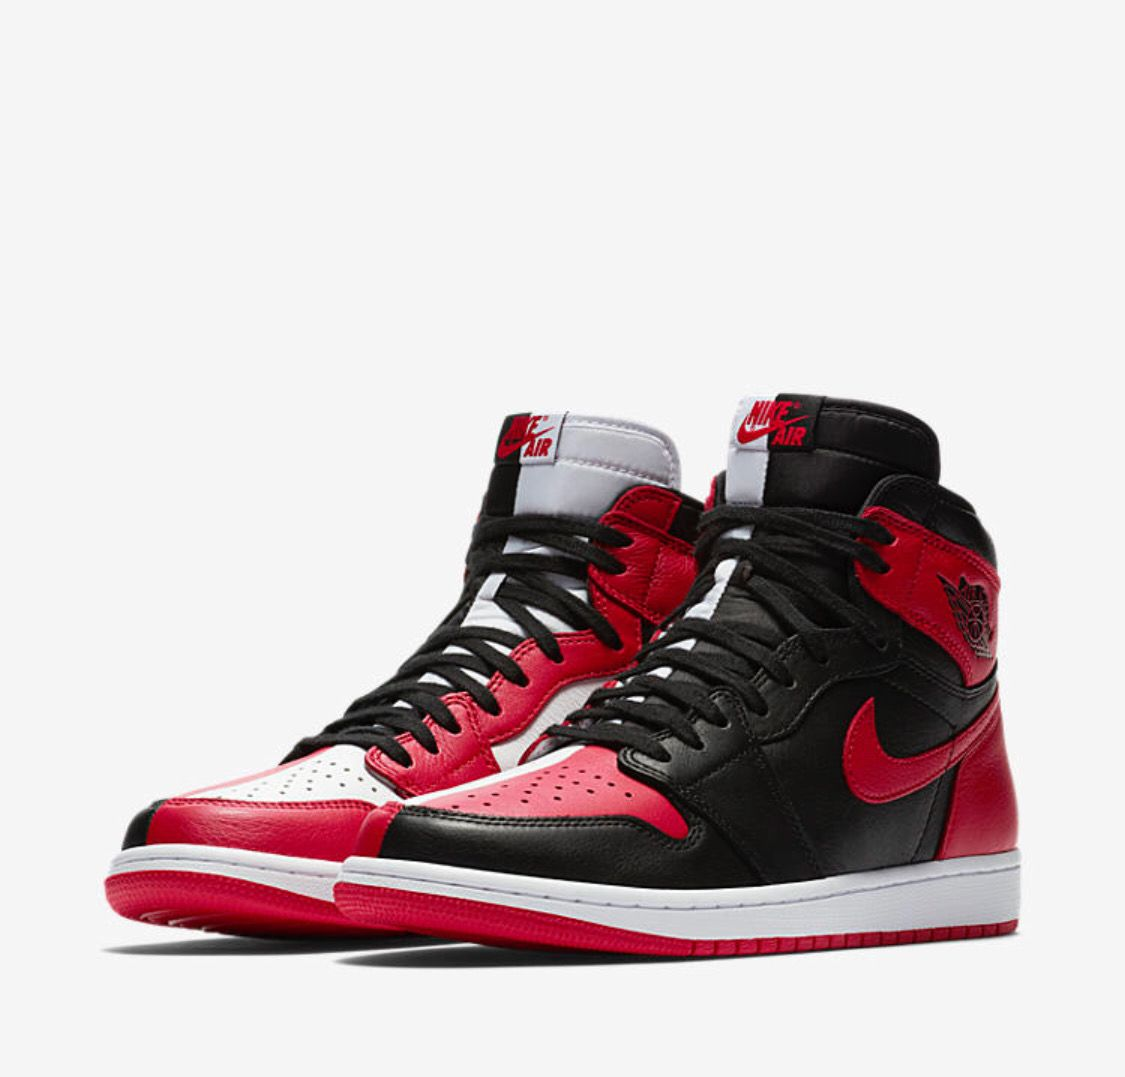 quality design dec33 4c87f Jordan 1, Nike Air Jordans, On Shoes, Sneaker, Slippers, Sneakers,